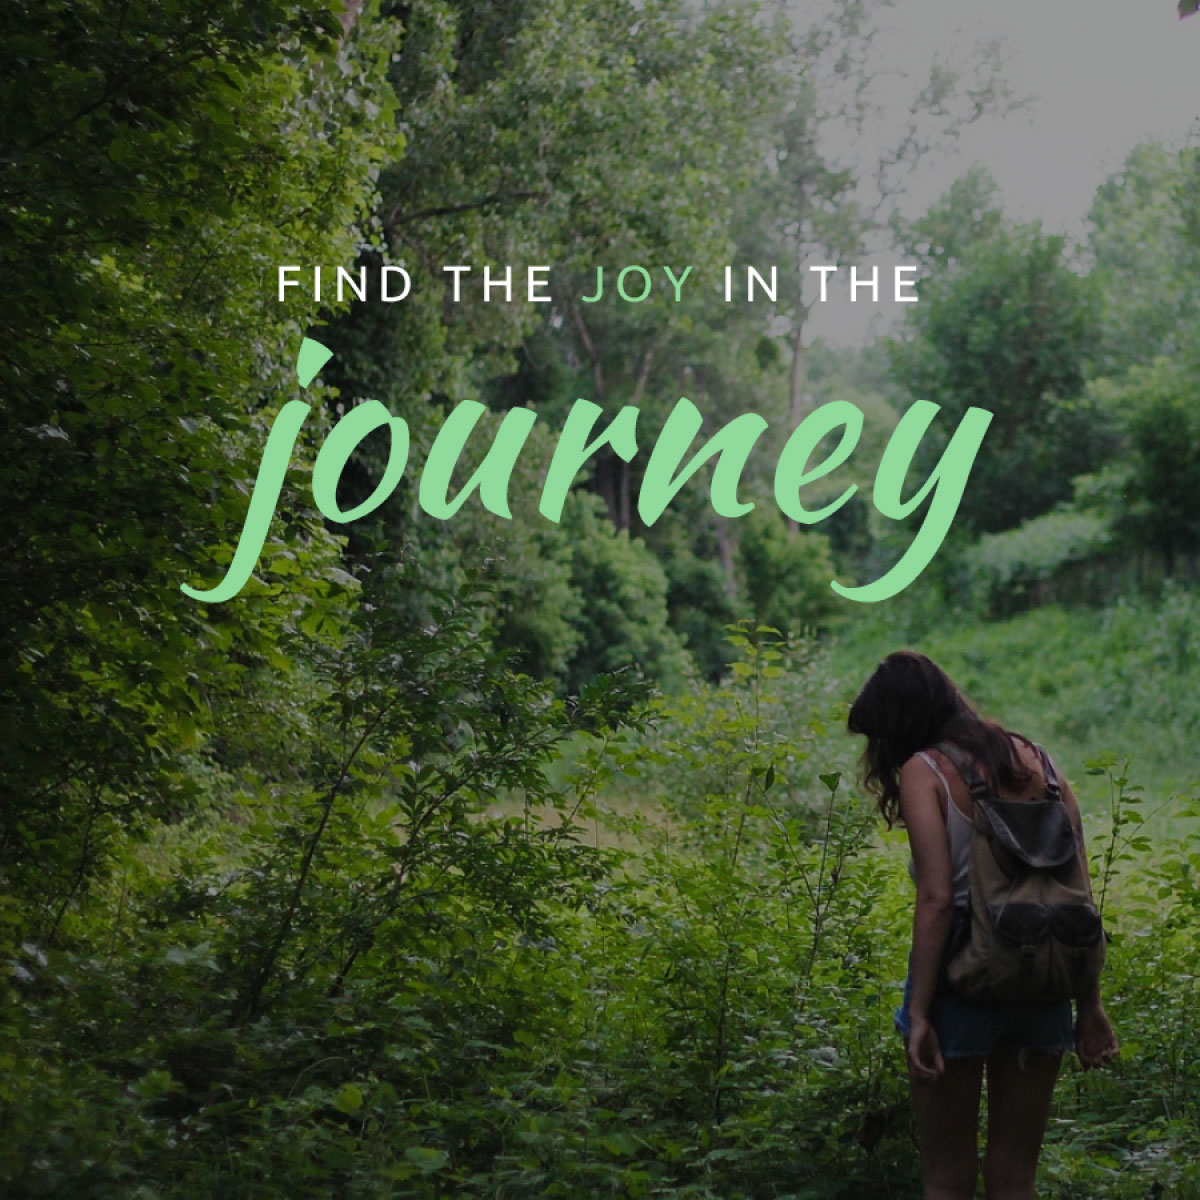 Finding The Joy in the Journey (being mindful)